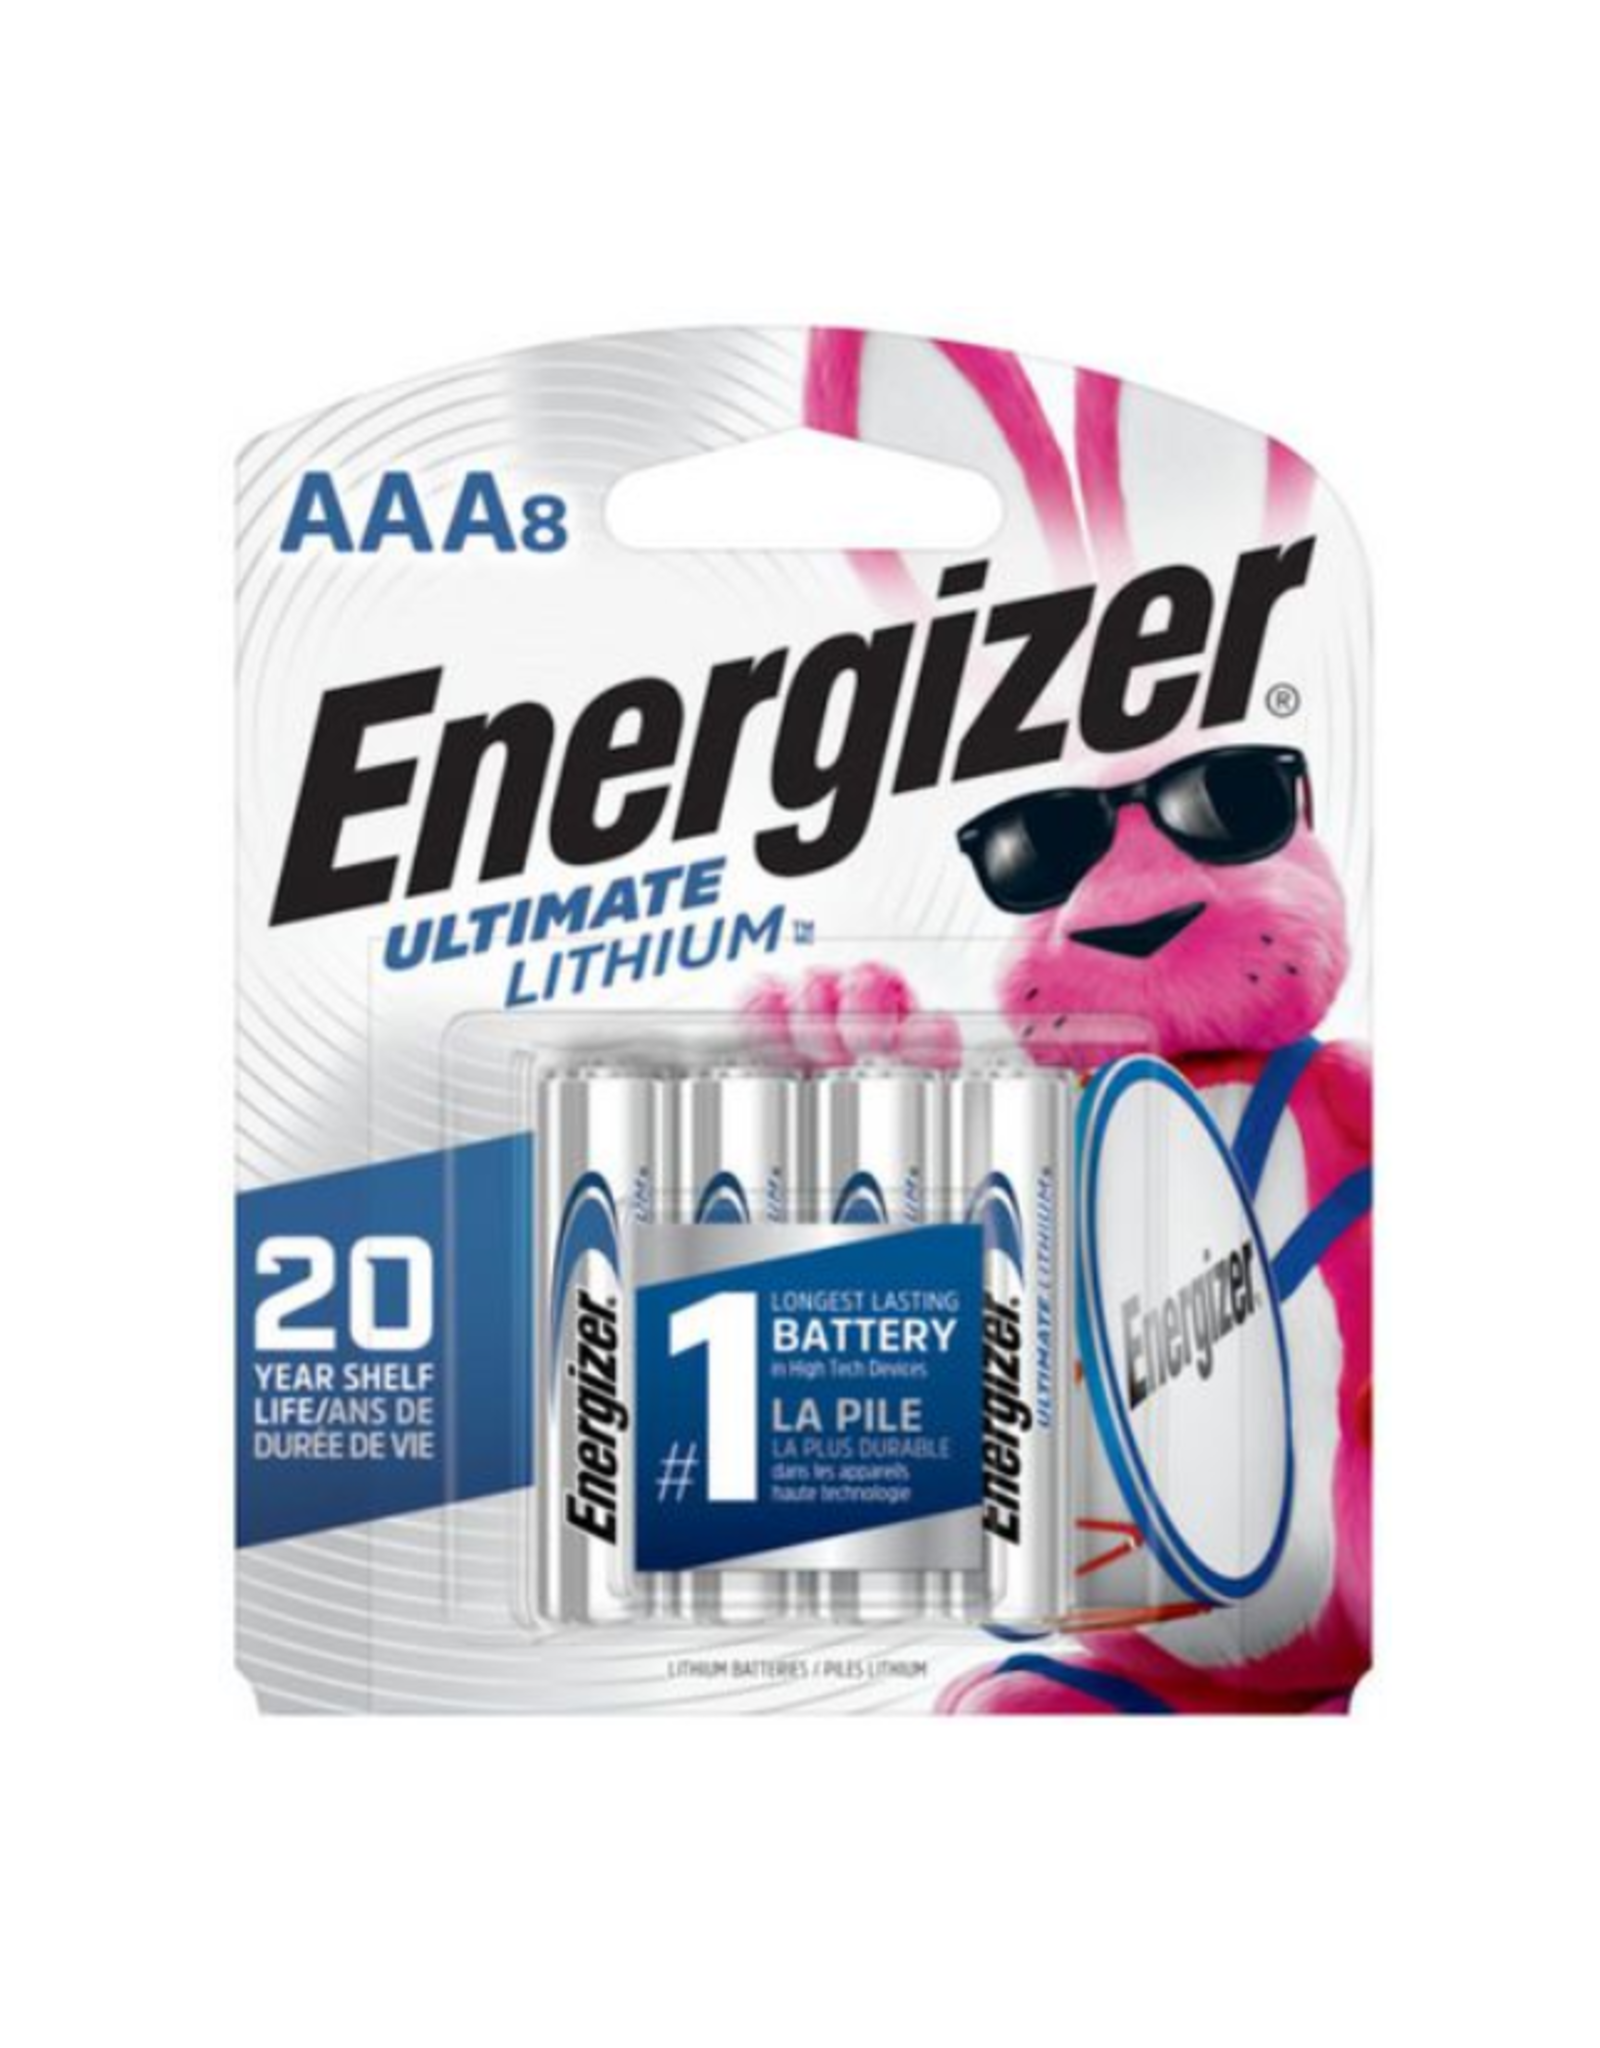 Energizer Energizer Ultimate AAA Lithium Batteries 8 pack